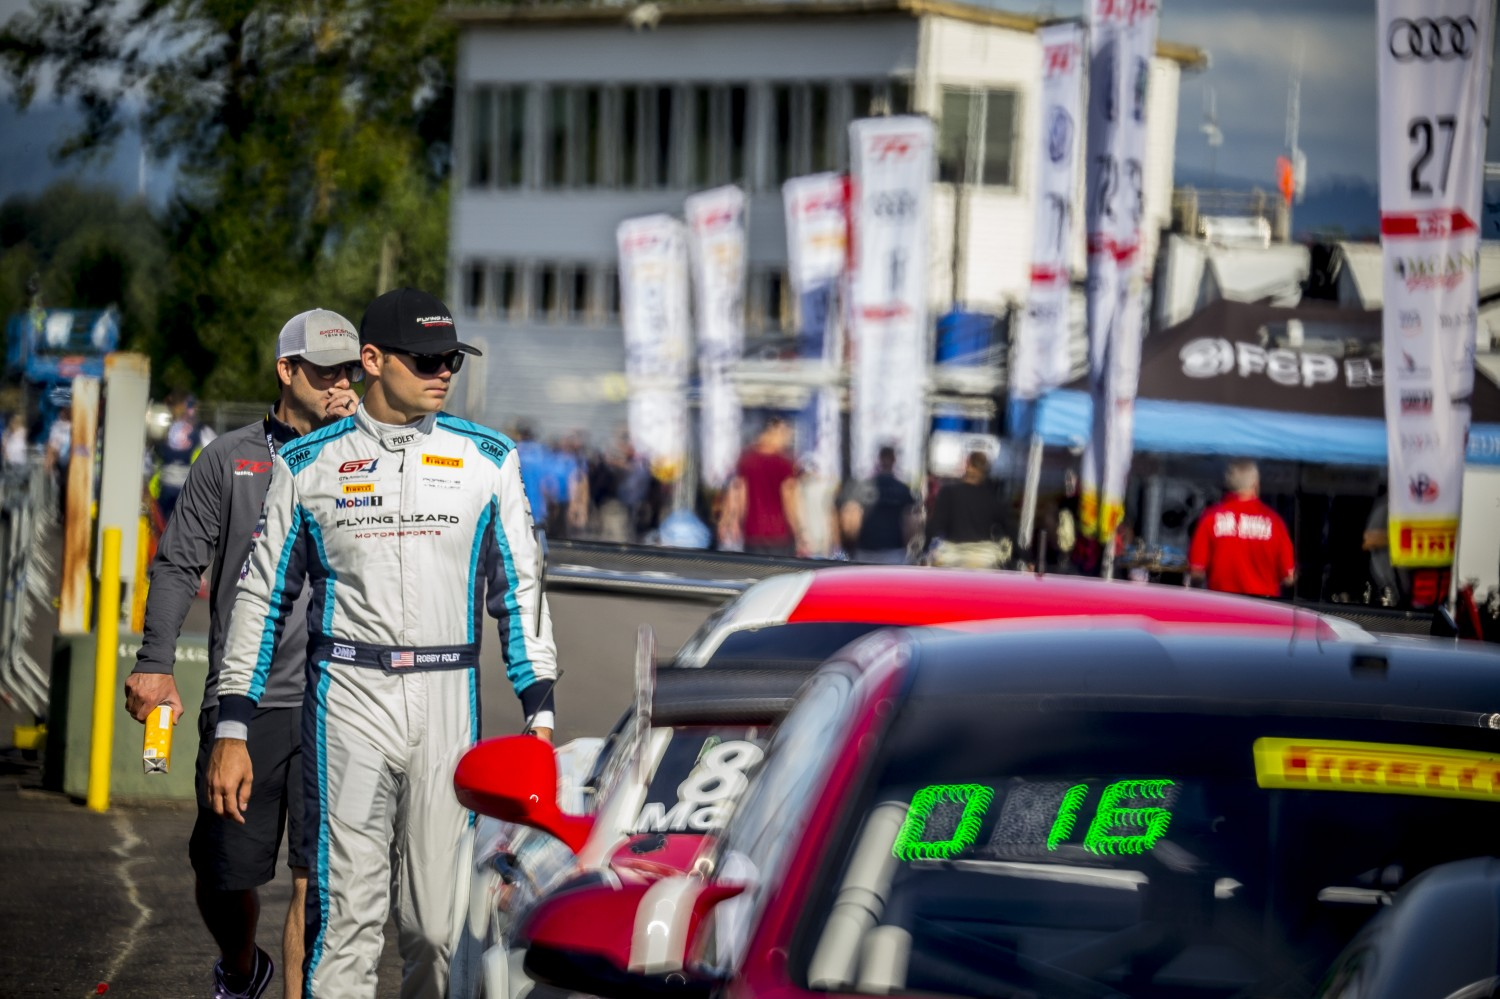 #21 Porsche 718 Cayman CS MR of Michael Dinan and Robby Foley, Rose Cup Races, Portland OR  | Brian Cleary/SRO